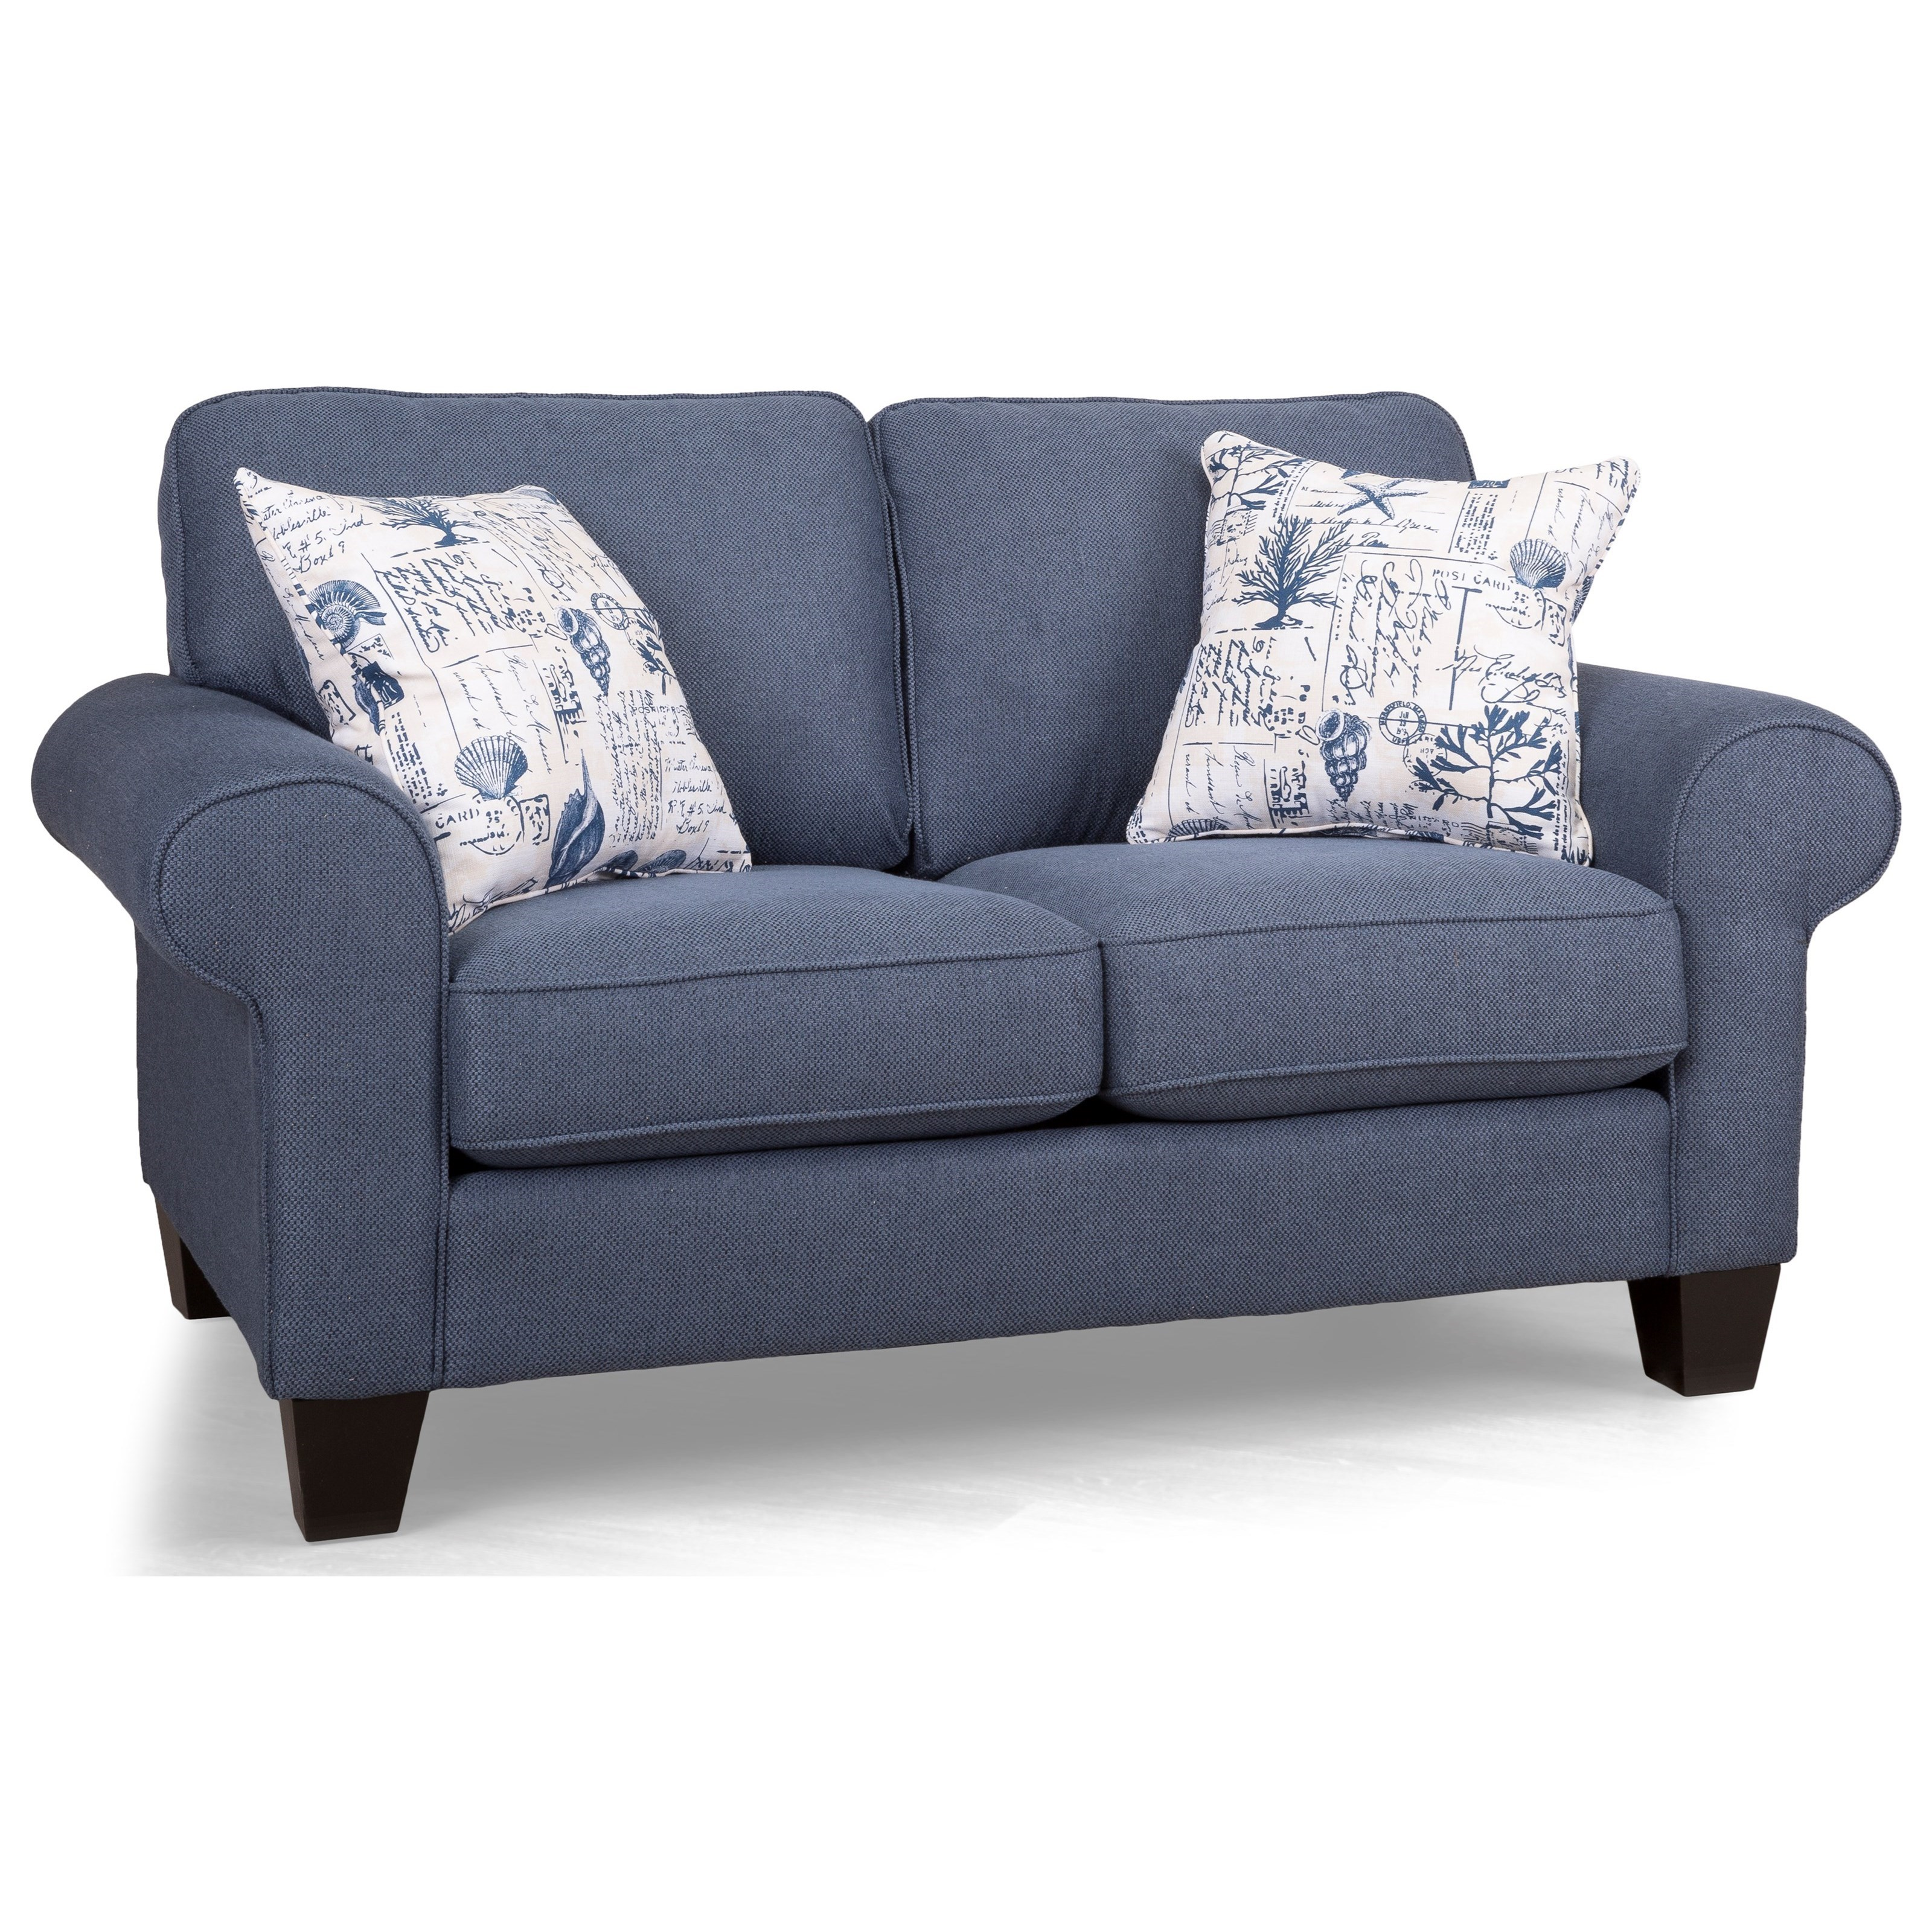 2323 Loveseat by Decor-Rest at Rooms for Less